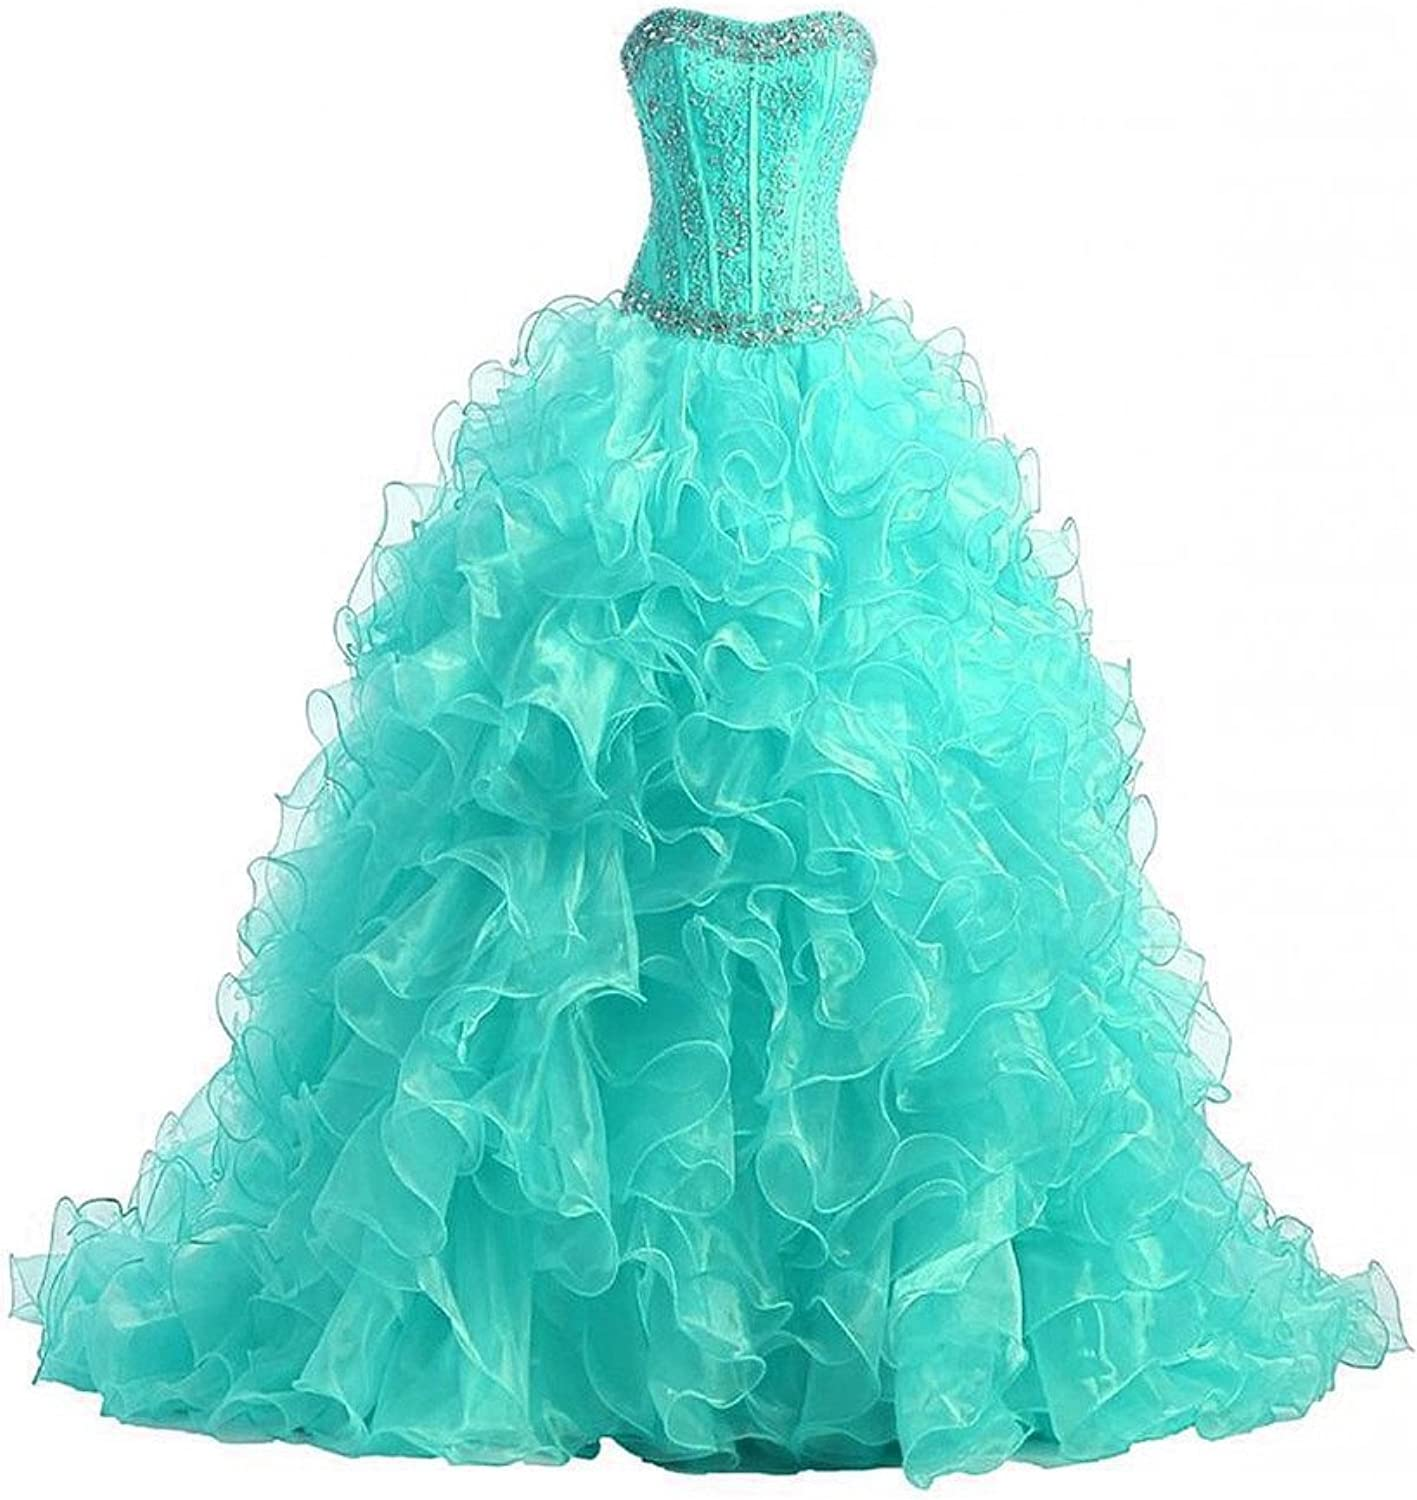 HSDJ Women's Beading Corset Tailing Quinceanera Ball Gowns with Embroidery 0 US Turquoise